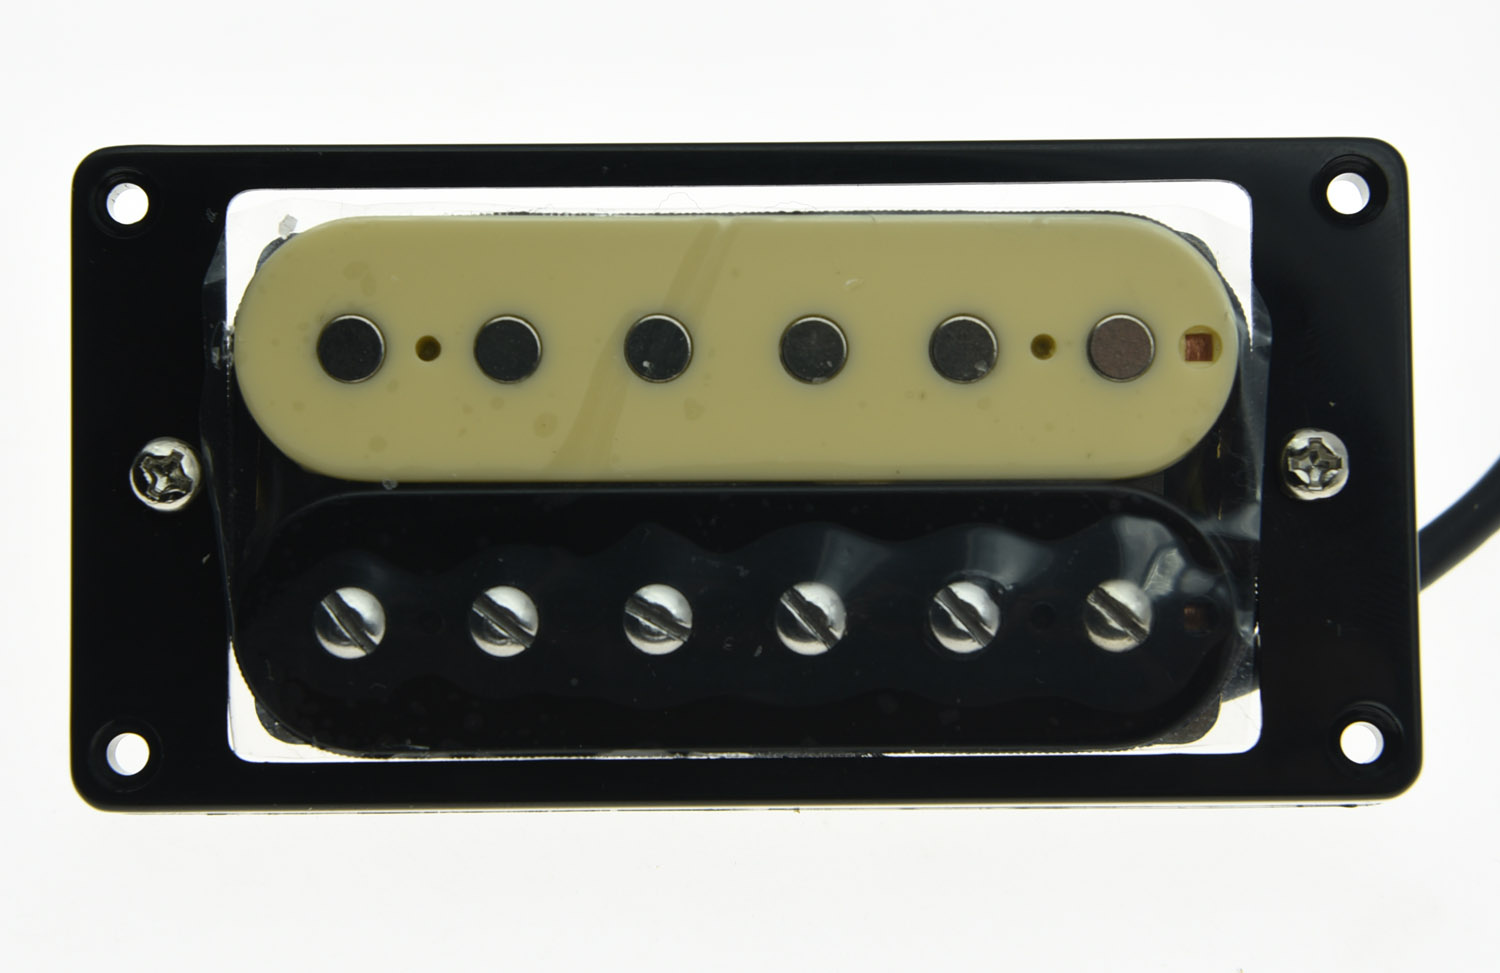 KAISH Alnico V Guitar Humbucker Bridge Pickup 50's Vintage Sound Pickups Zebra Style vintage voice single coil pickups fits for stratocaster ceramic bobbin alnico single coil guitar pickup staggered pole top